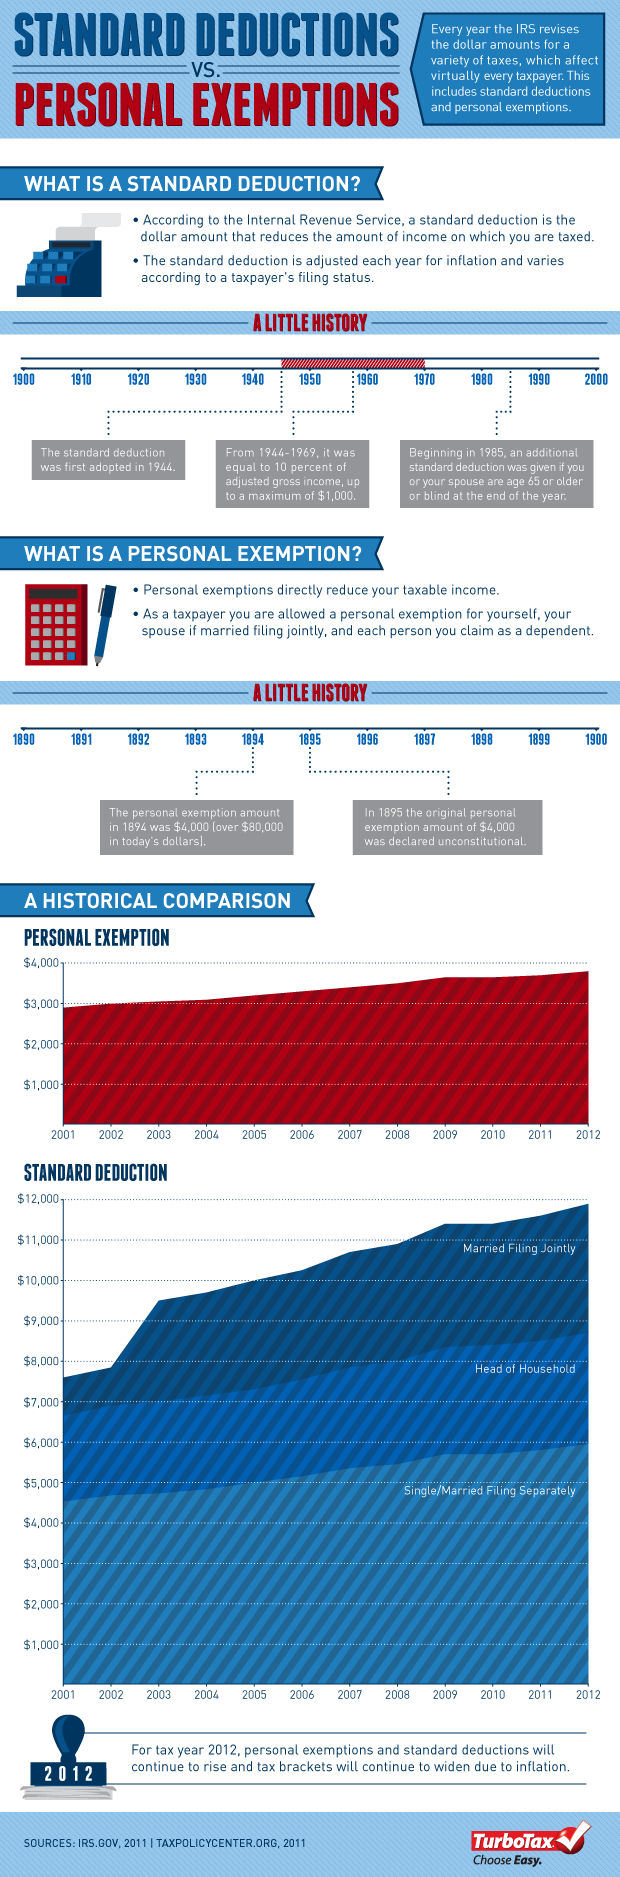 Standard Deduction Personal Exemption Infographic